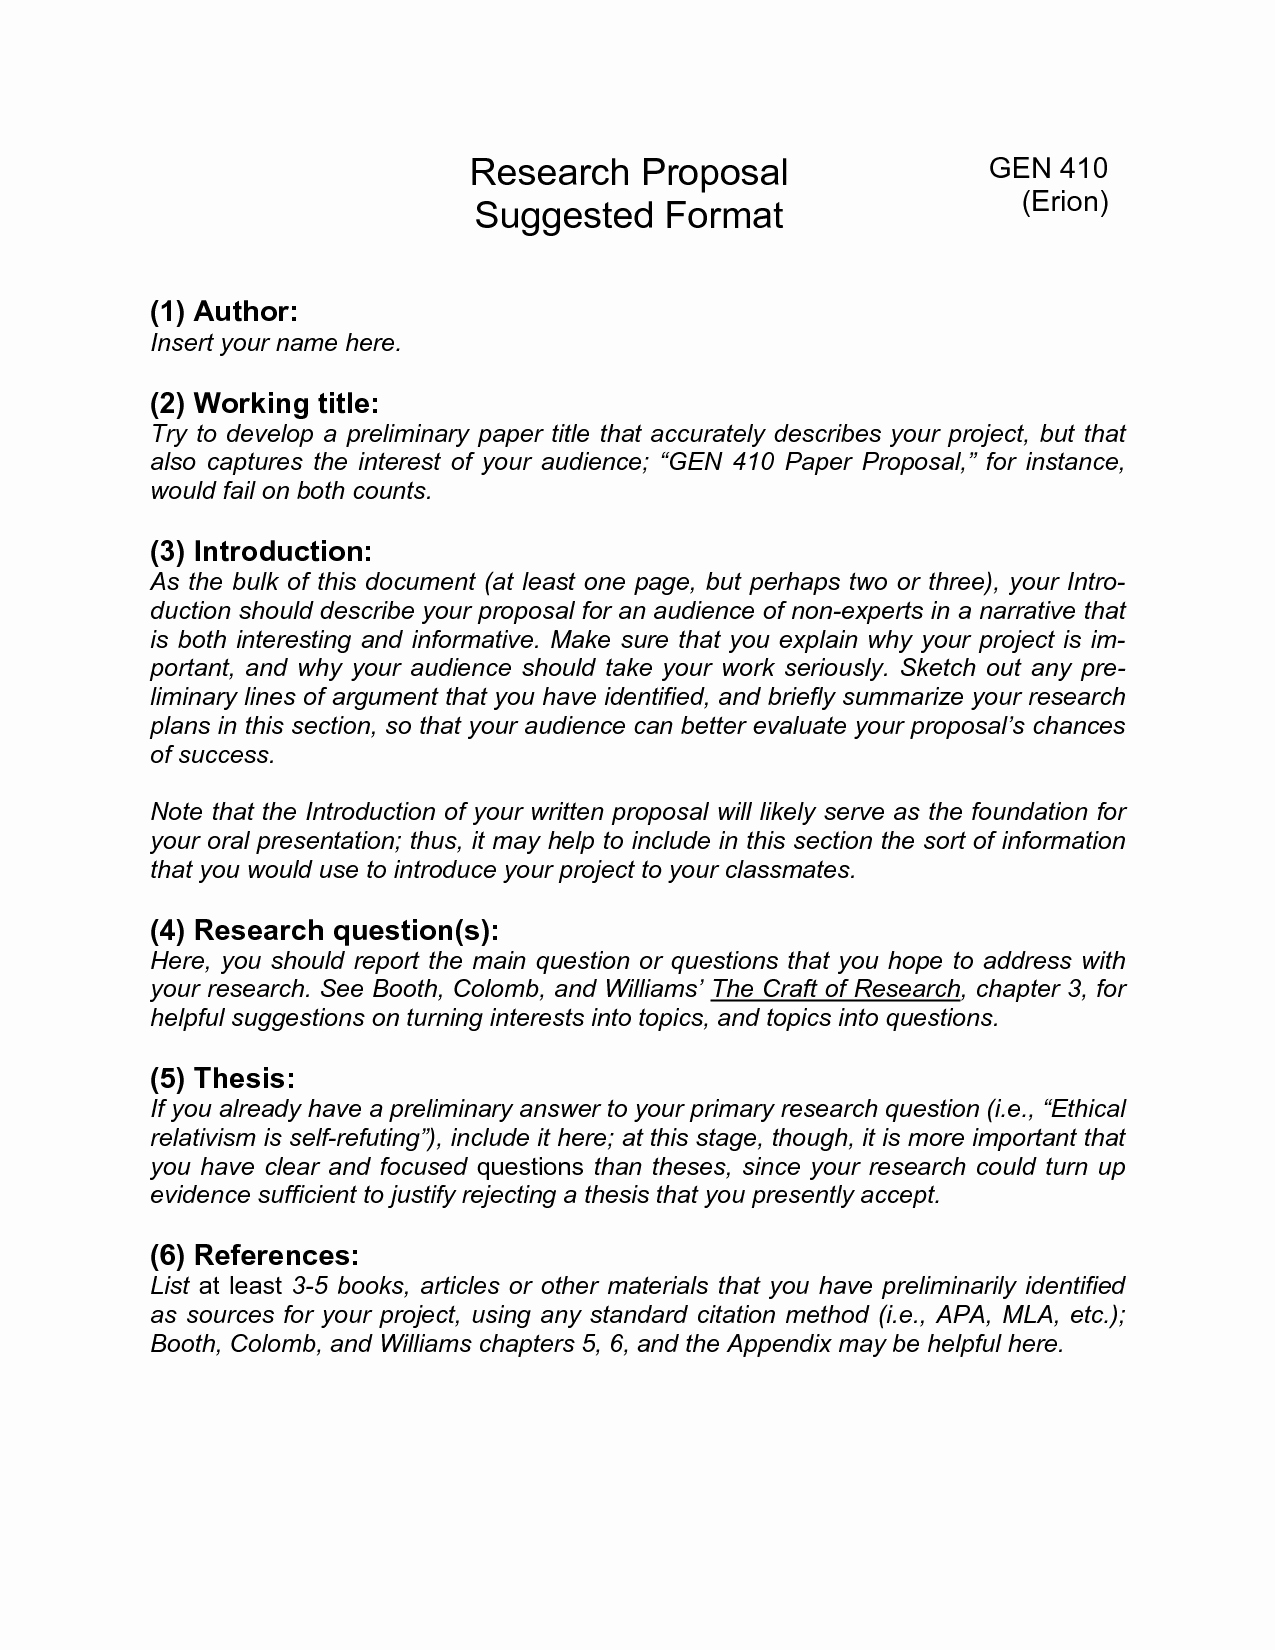 Research Paper Proposal Template Elegant Mla Research Proposal Example Eassaywritting X Fc2